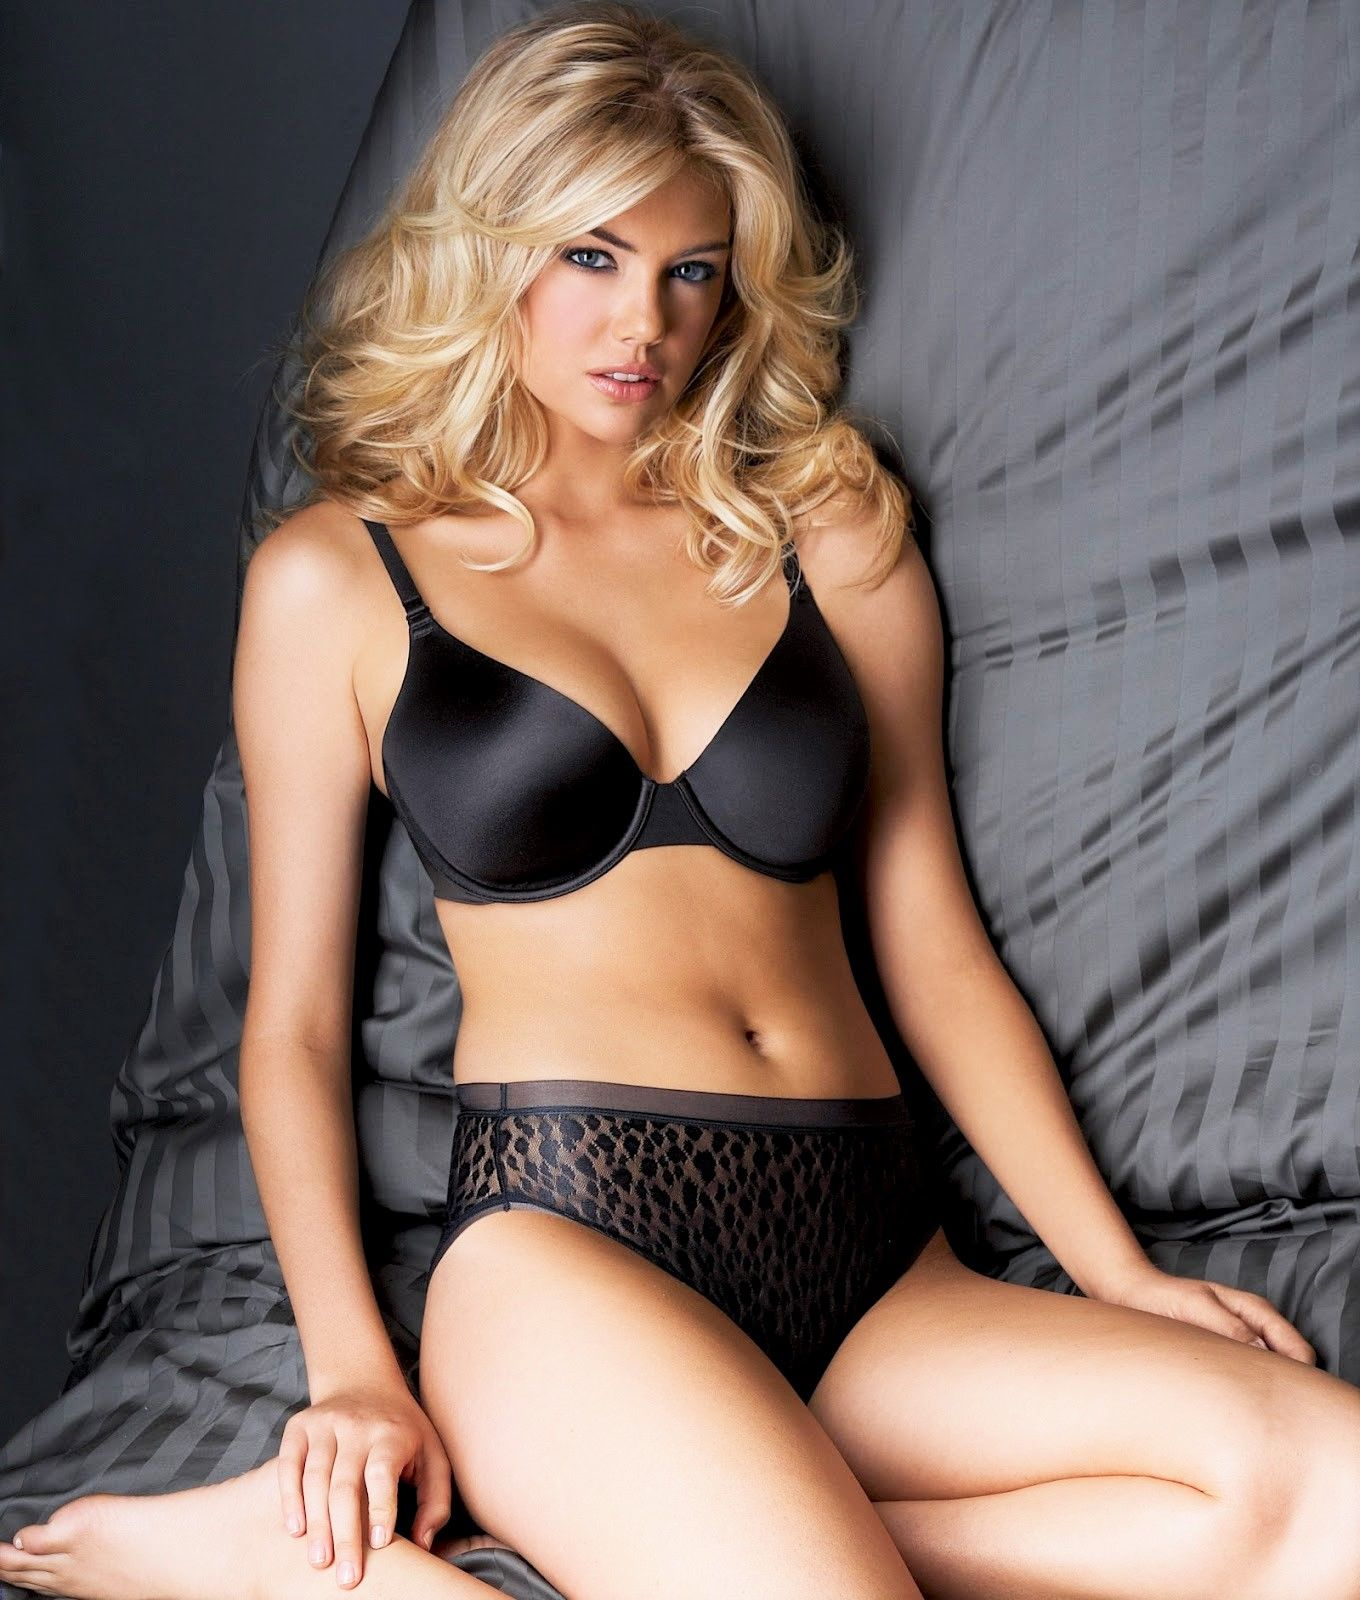 ead0beb0cf ... bra and panty goodness! Kate Upton